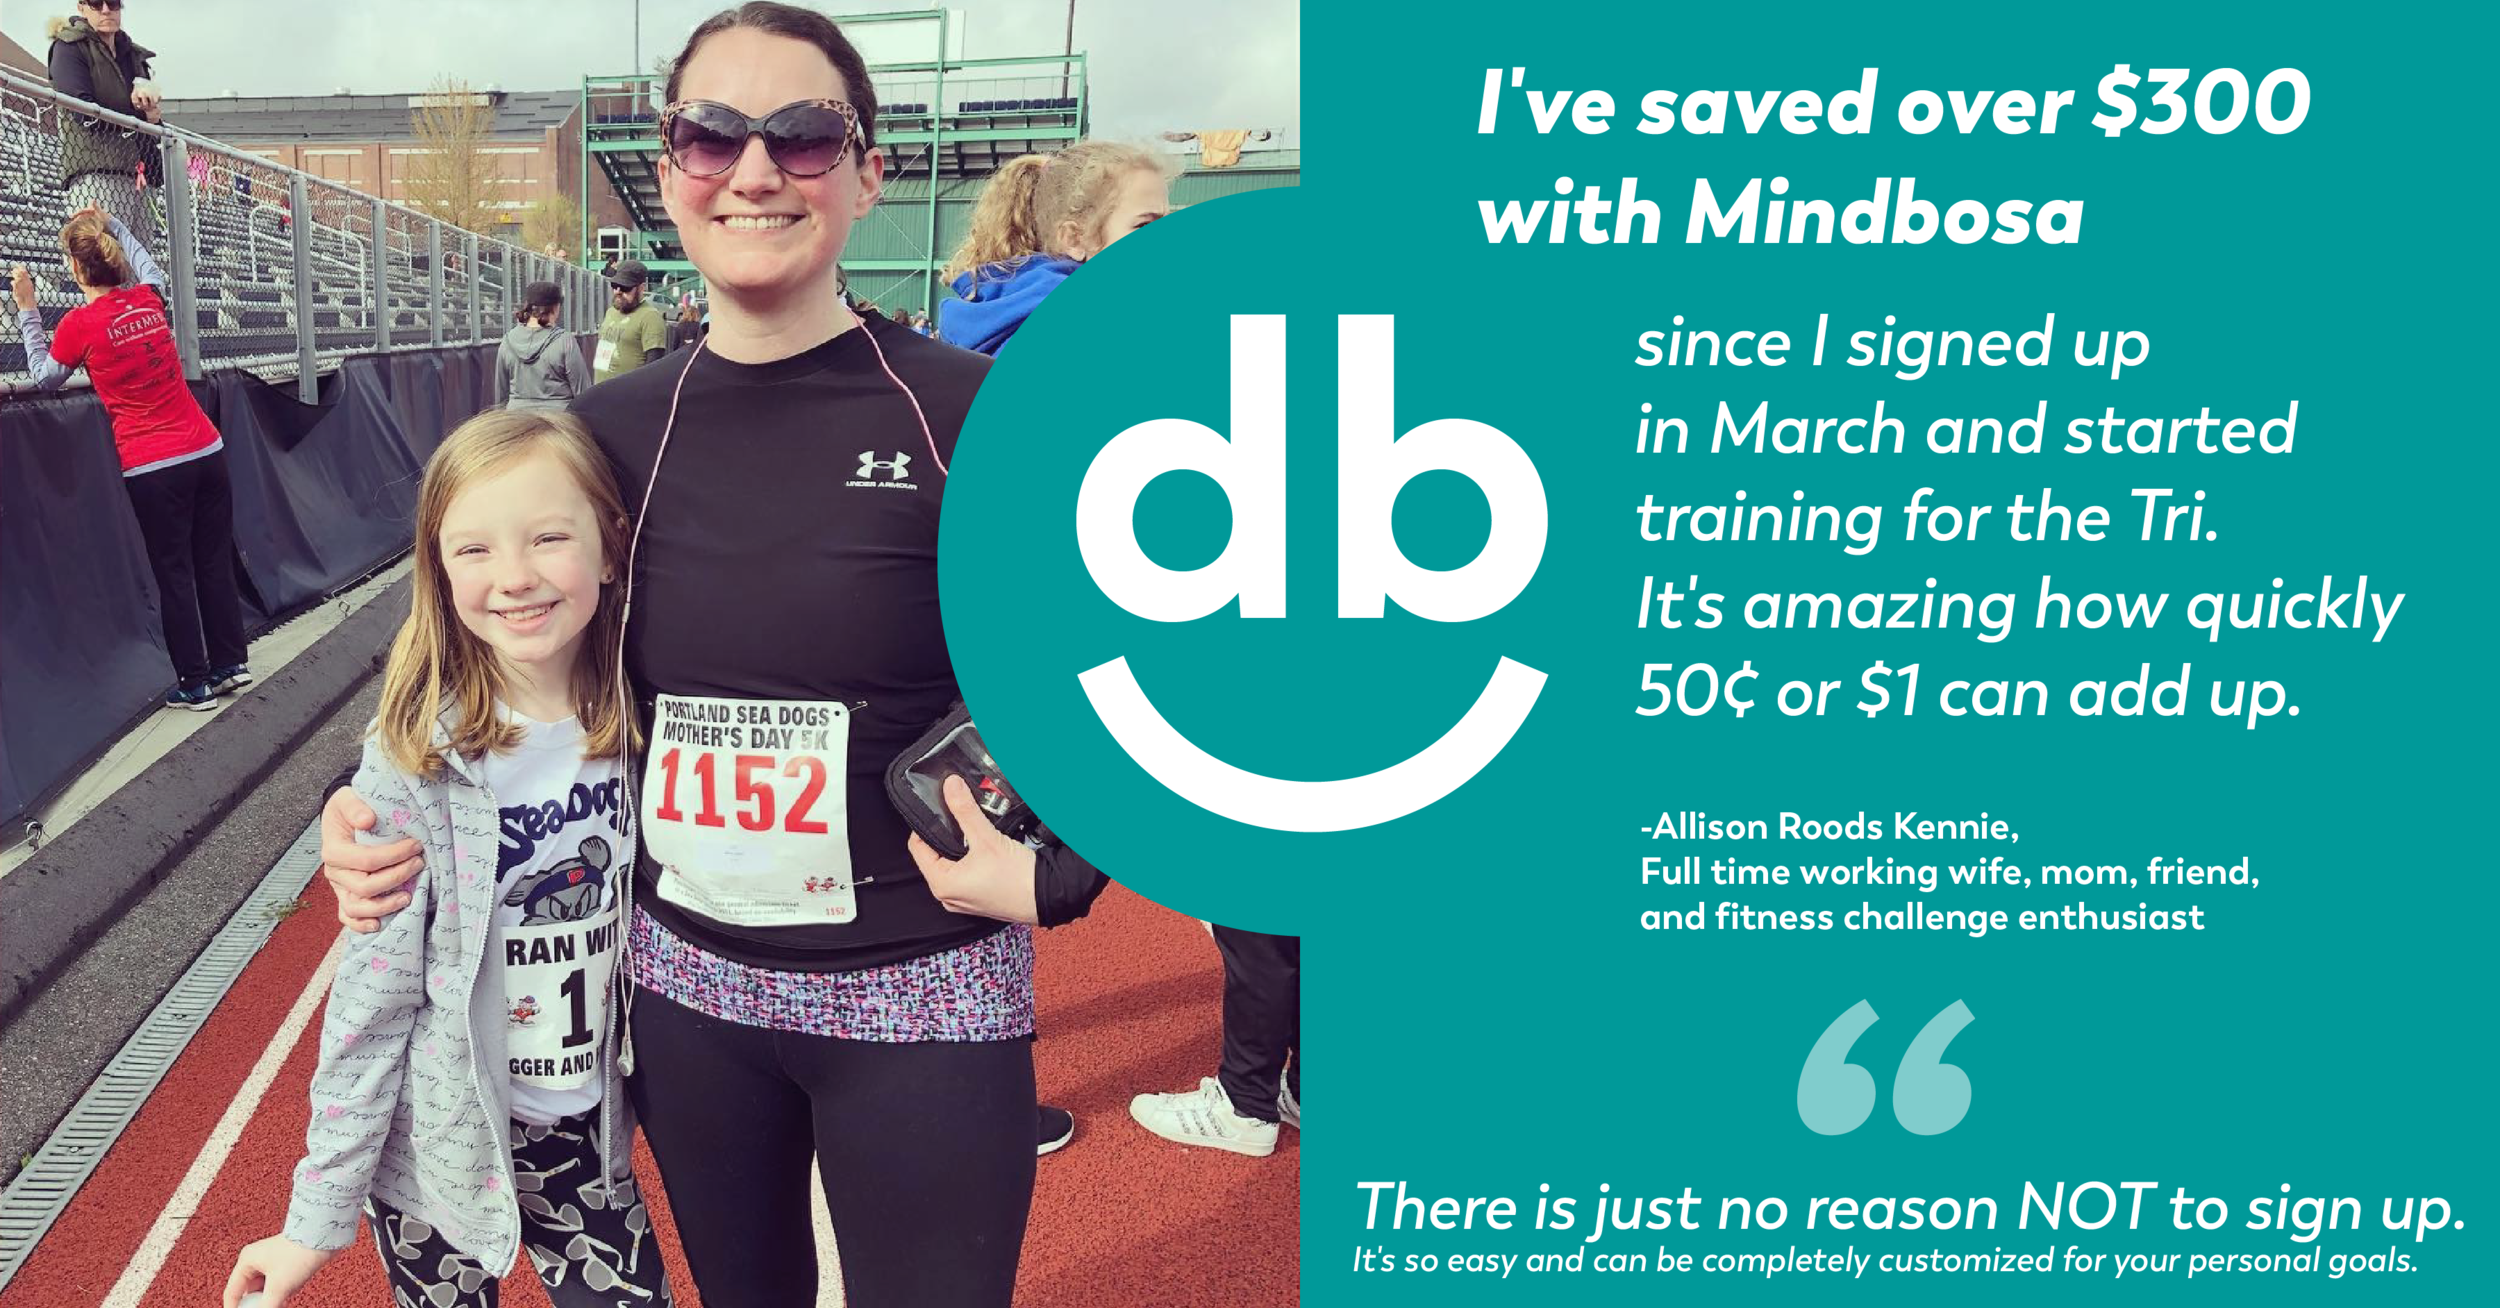 Allison is a full time working wife, mom, friend, and fitness challenge enthusiast.  Read More